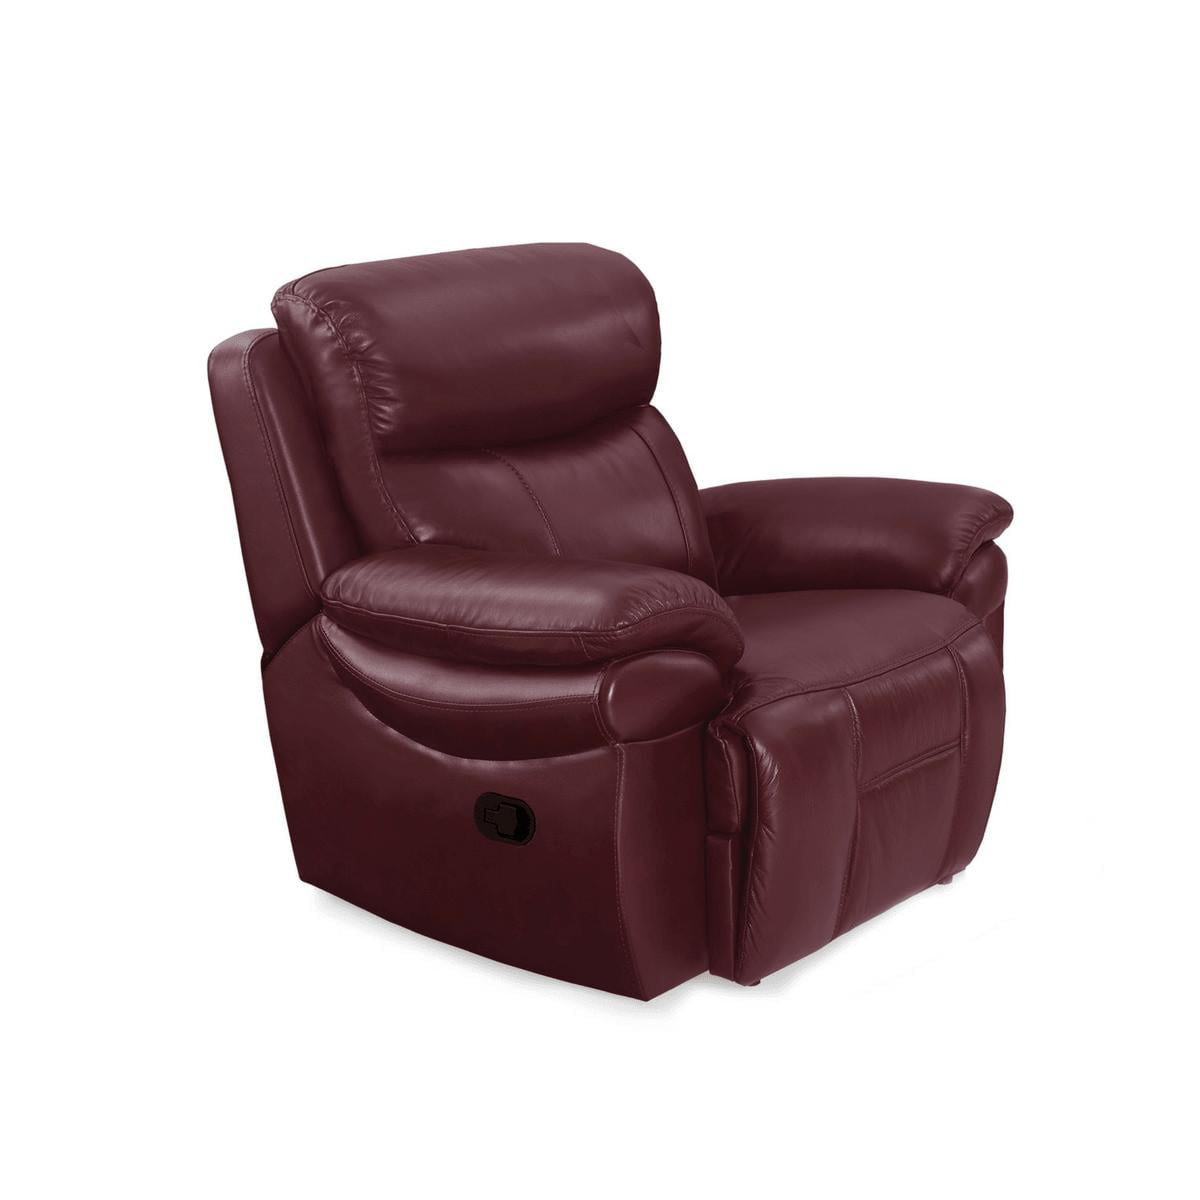 Groovy Chicago 1 Seater Power Recliner Pdpeps Interior Chair Design Pdpepsorg